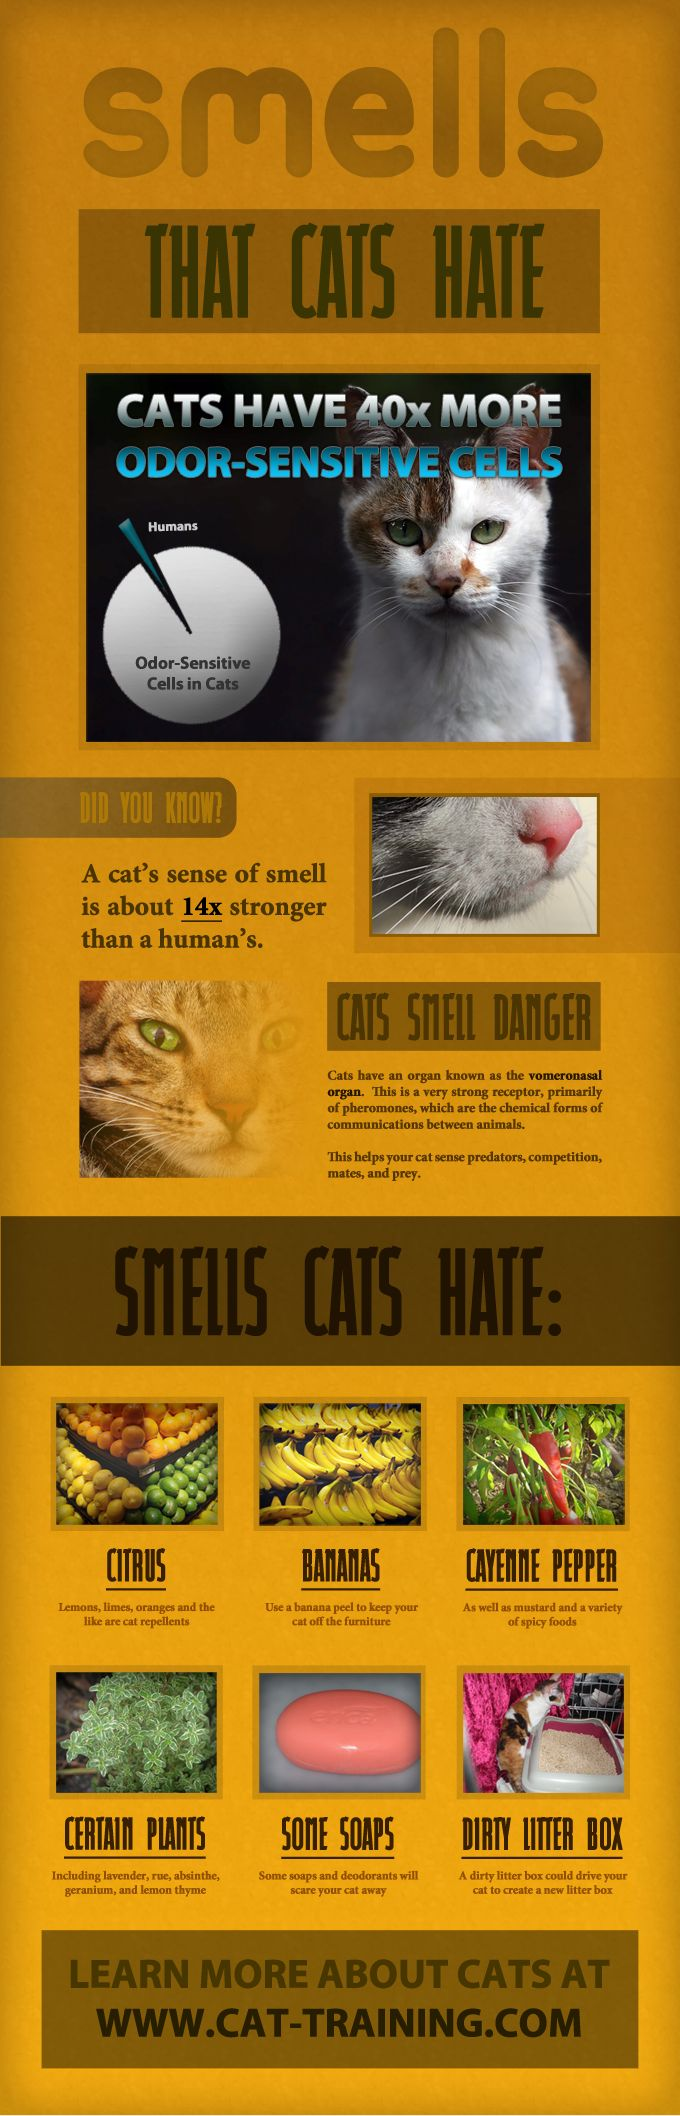 Copy and paste the code below to add the infographic to your website: #catfacts - More fact about cat at Catsincare.com!